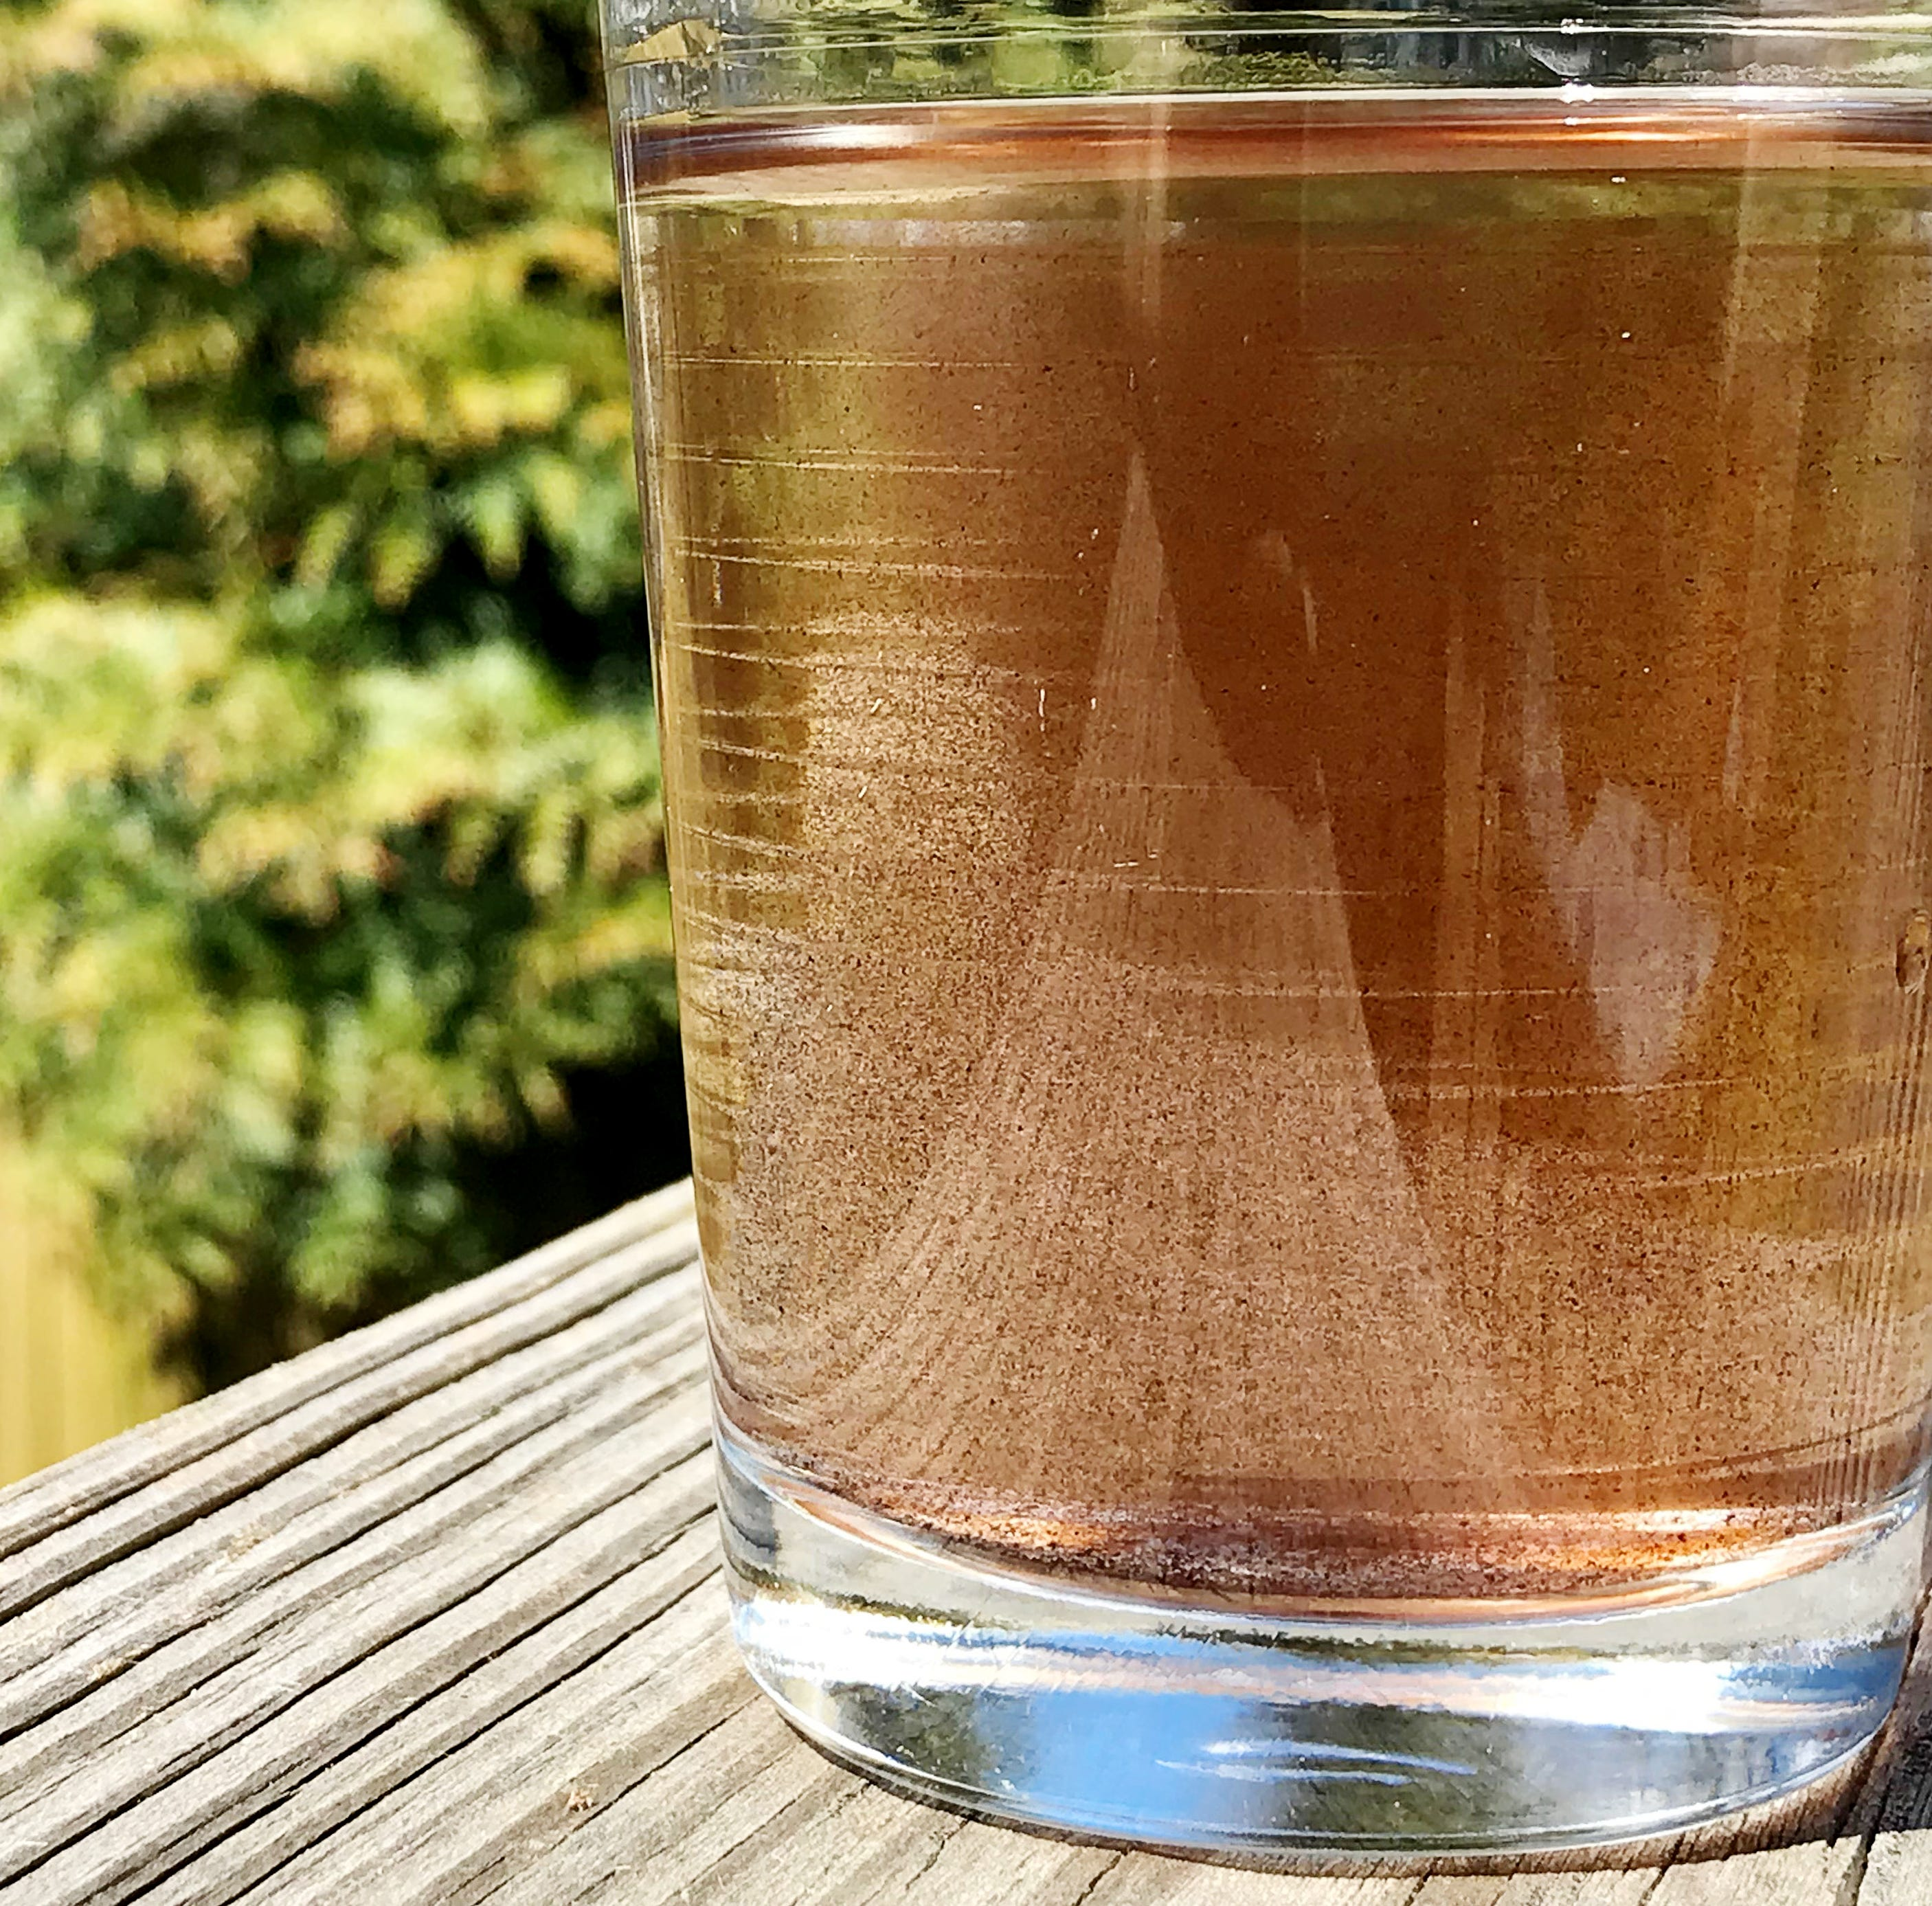 East West Asheville residents complain about brown water. Here's why they got no warning.